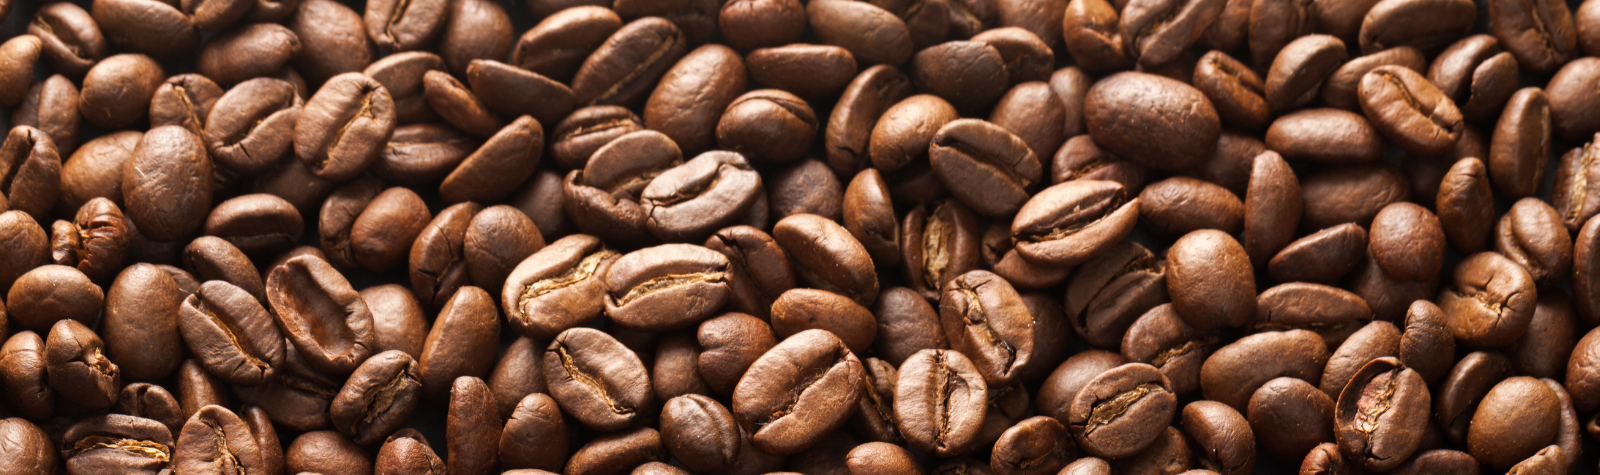 Fuel Productivity: What's the Best Coffee For You?